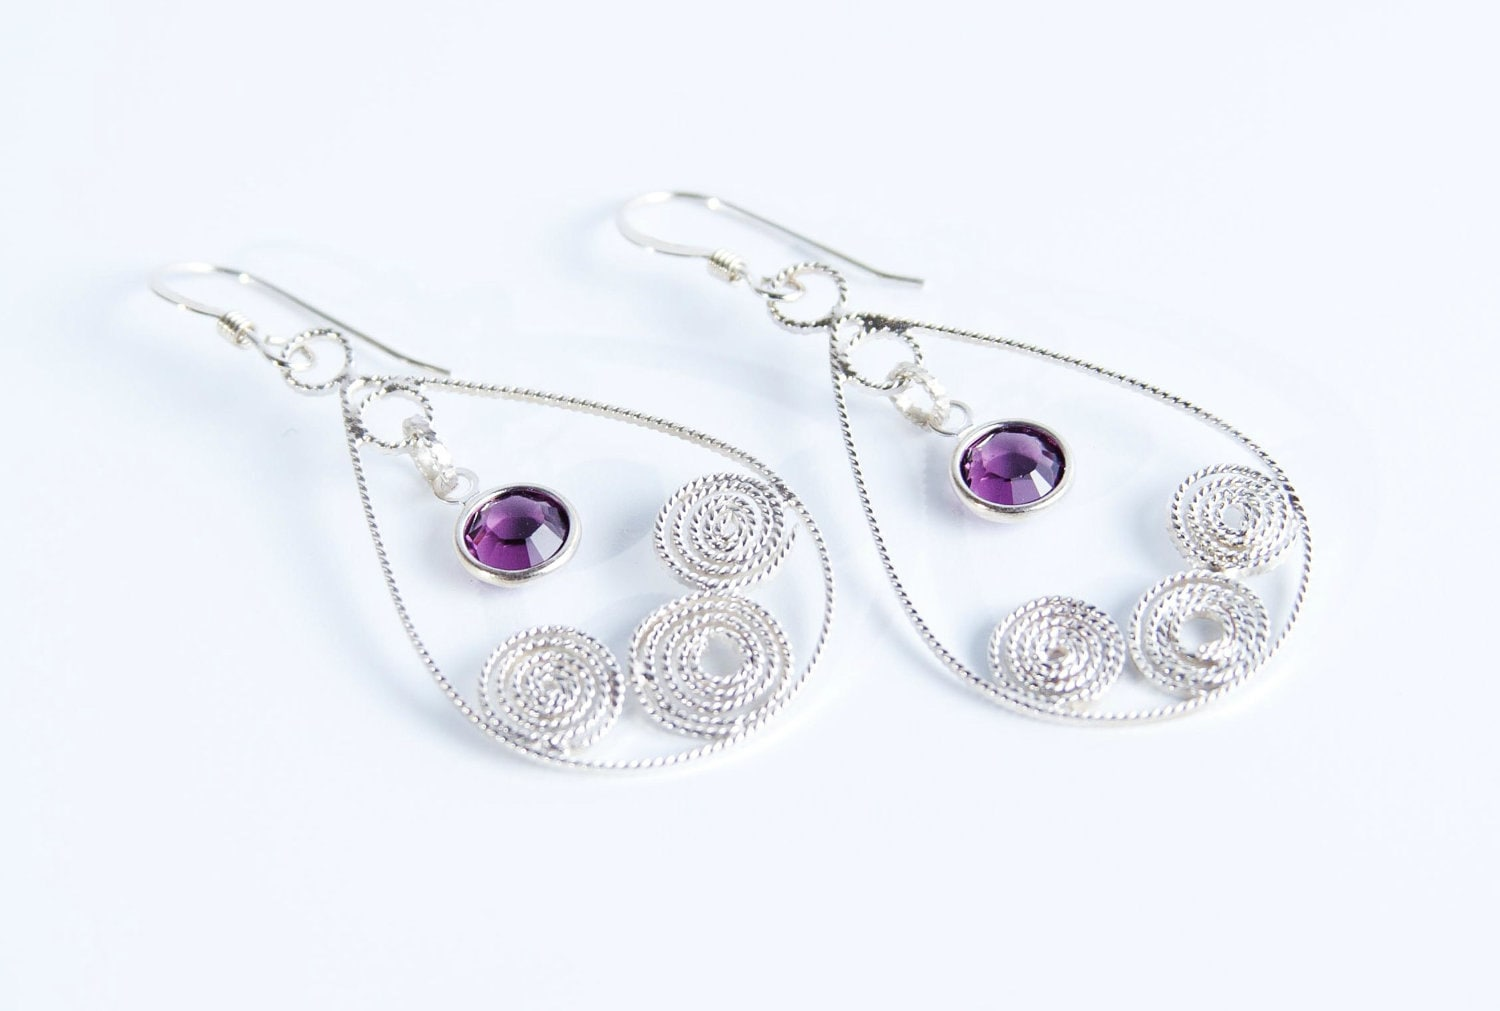 Purple Amethyst Swarovski Crystal Earrings,  Dangle Earrings, OR Pick Color, Filigree Jewelry, Tears of Joy Swirls